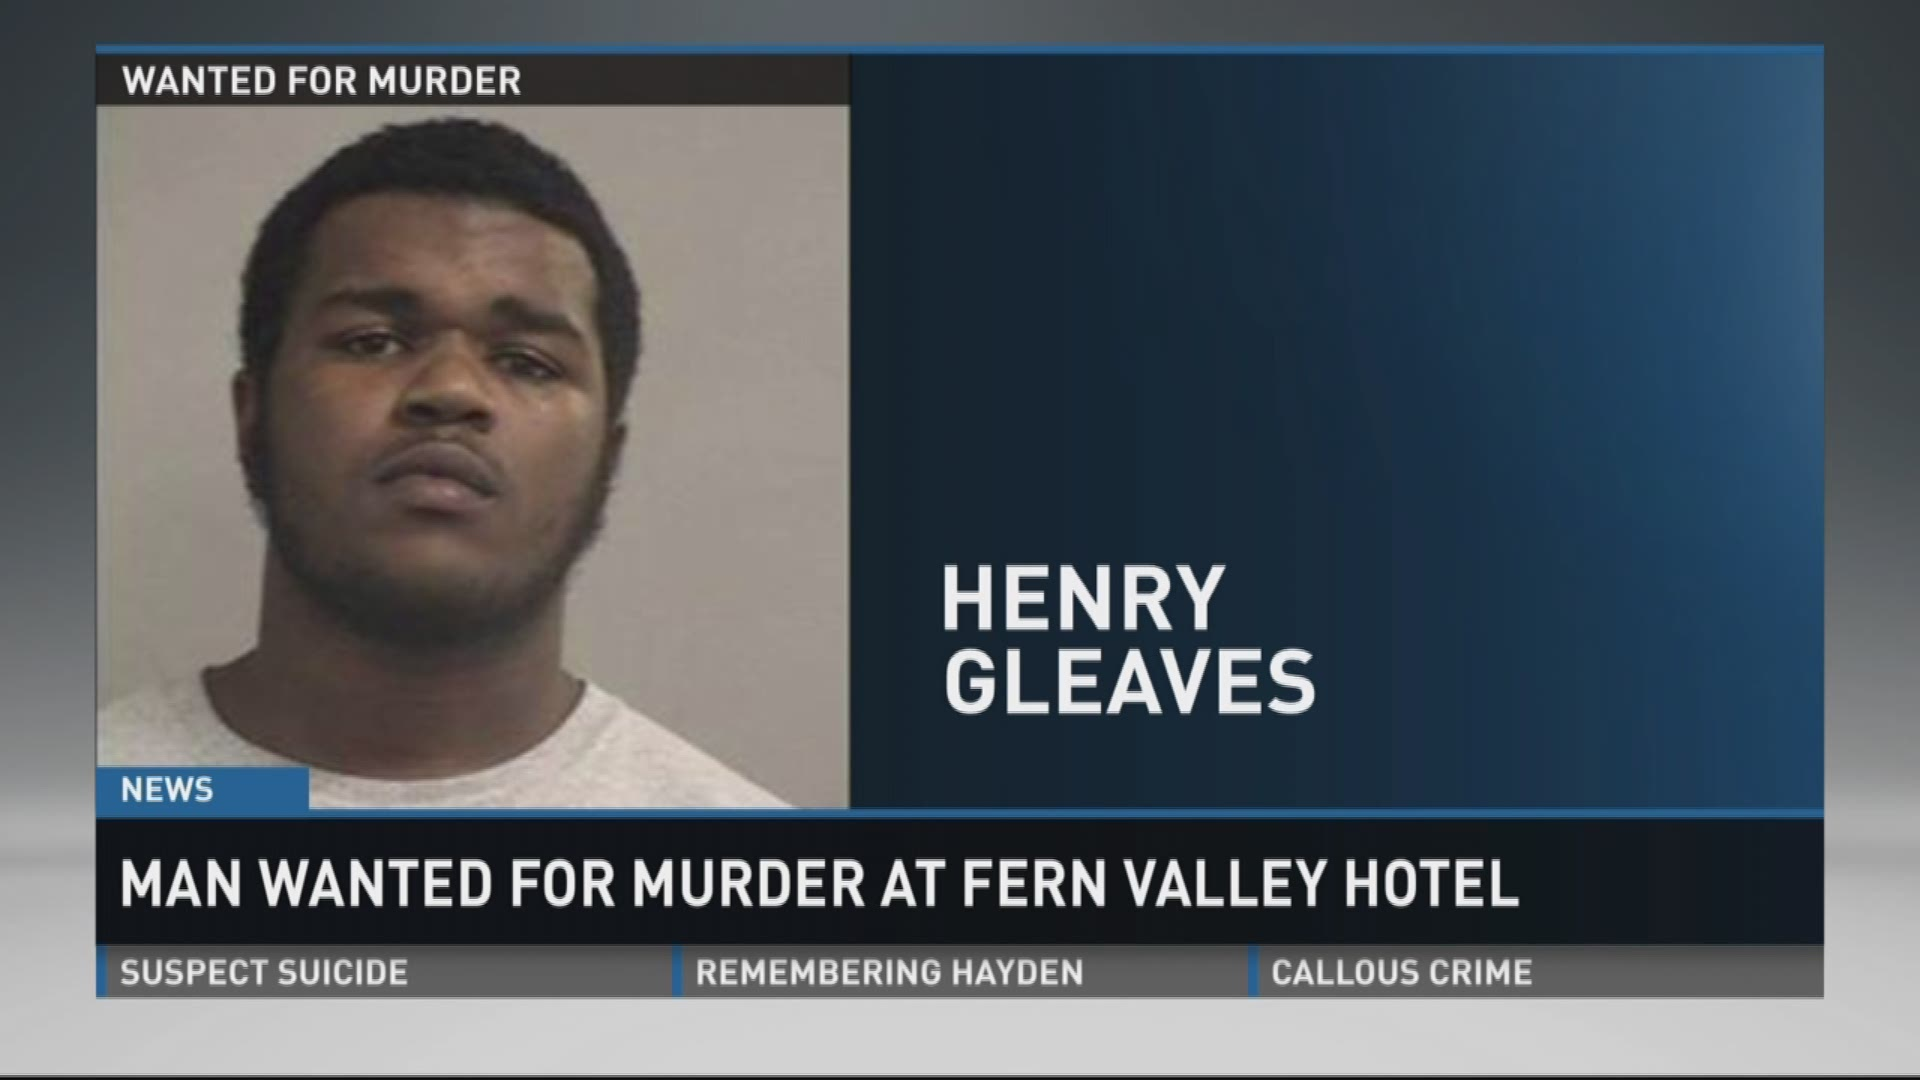 20-year-old wanted for murder at Fern Valley Hotel